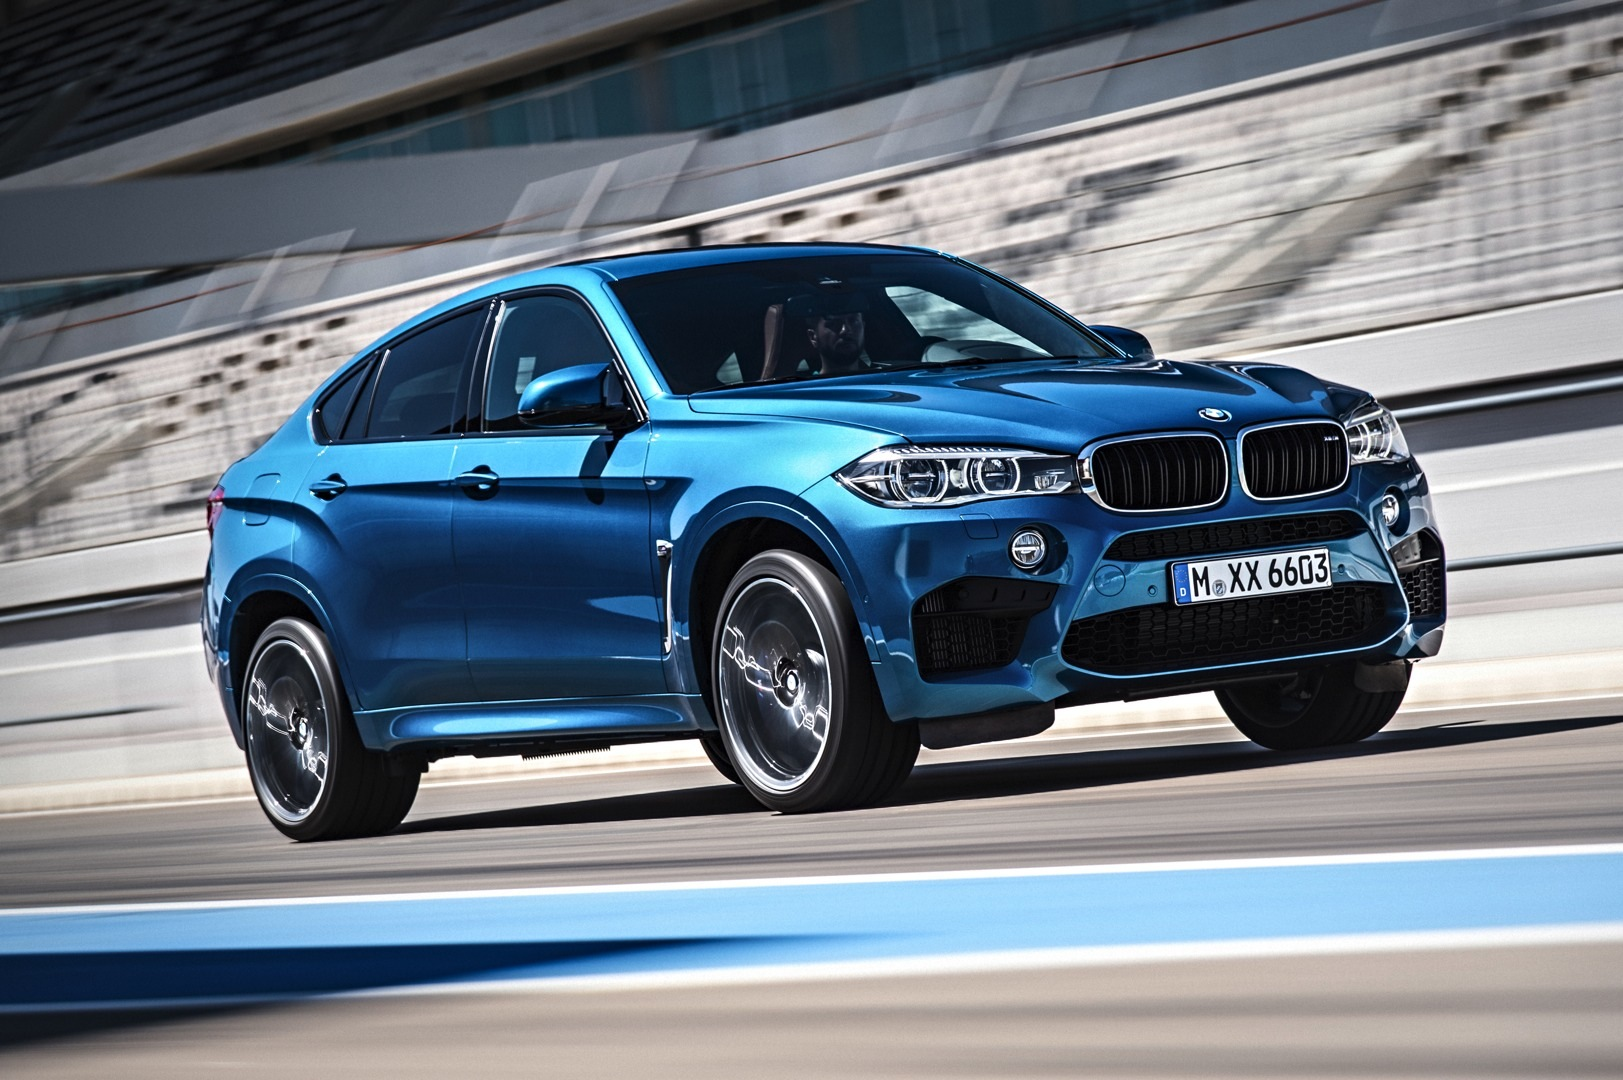 2015 Bmw X5 M And X6 M Pricing Starts At 99 650 In The Us